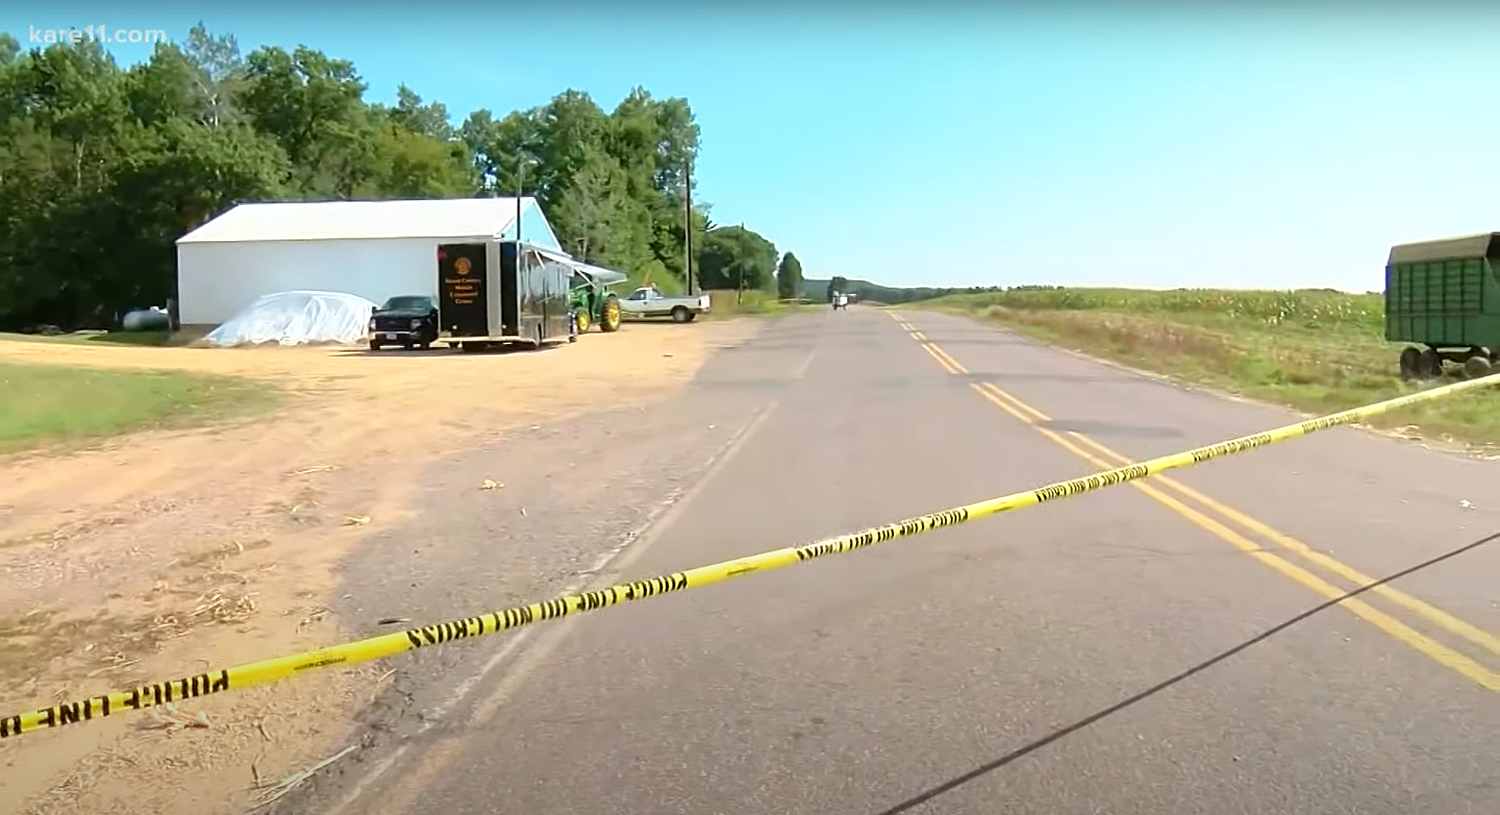 Four individuals were found dead inside an abandoned black SUV in Sheridan Township, Wisconsin